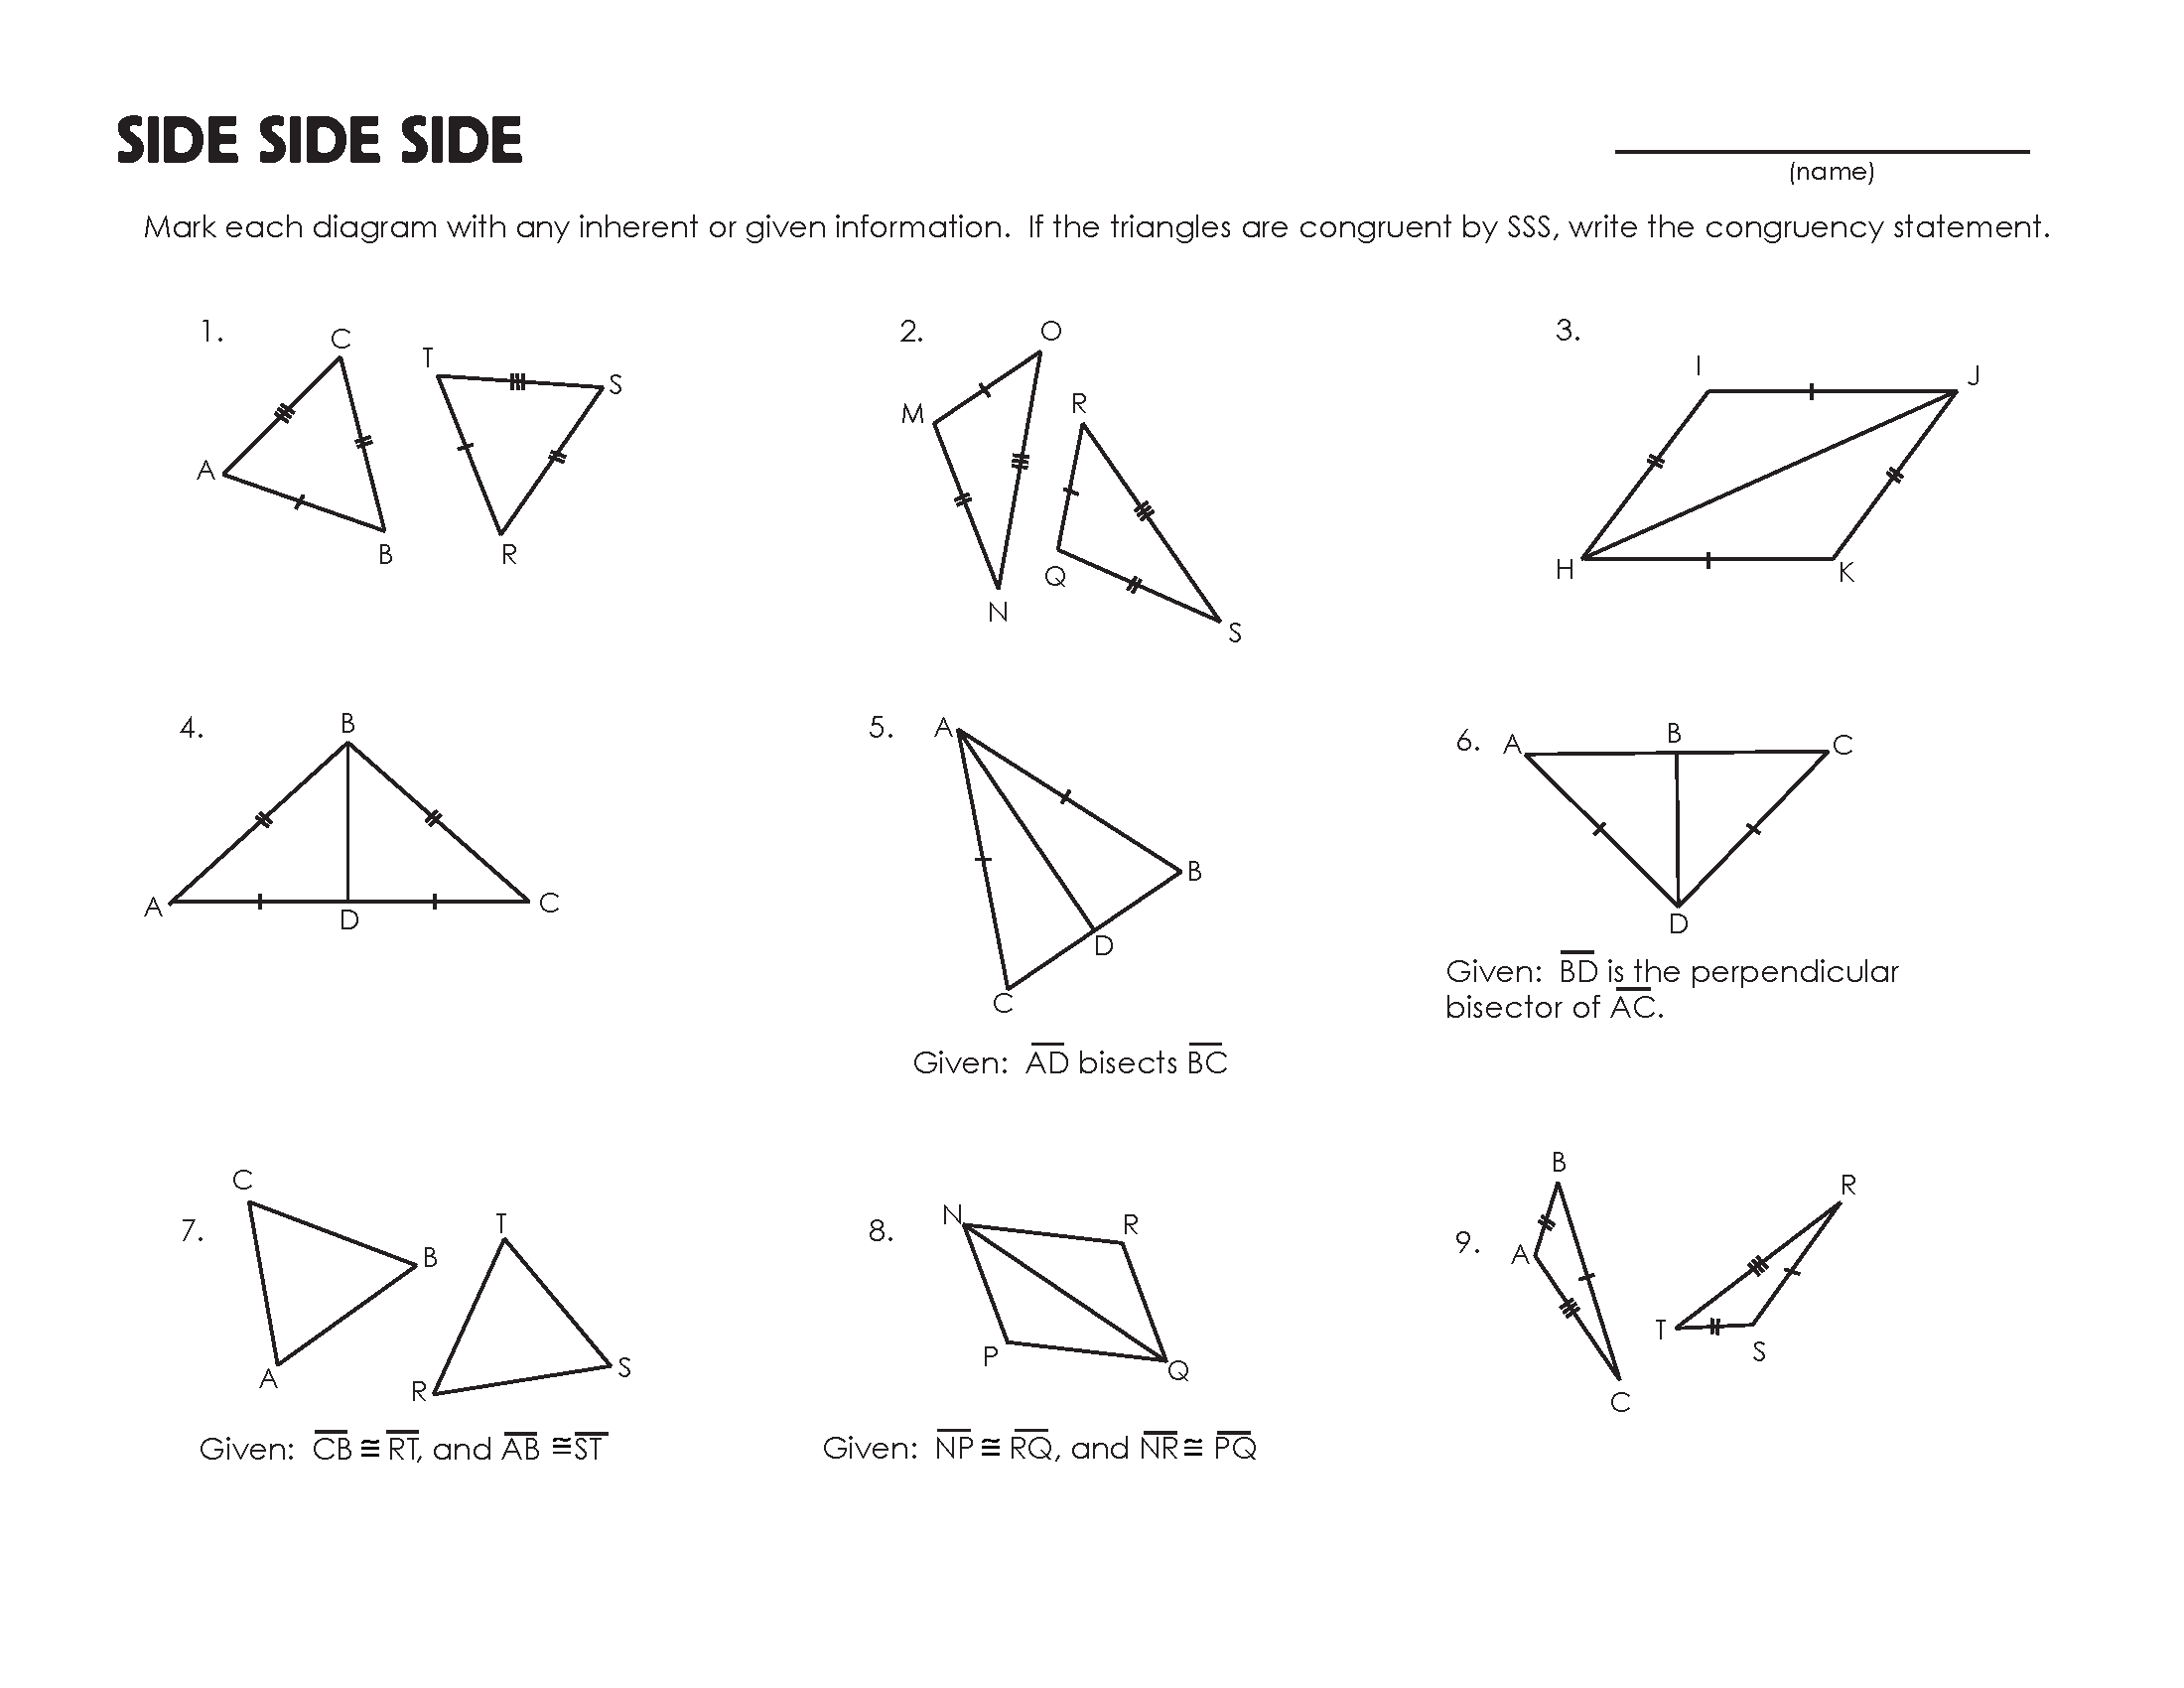 Worksheets Geometry Worksheet Congruent Triangles congruent triangles worksheet flora pinterest worksheets worksheet